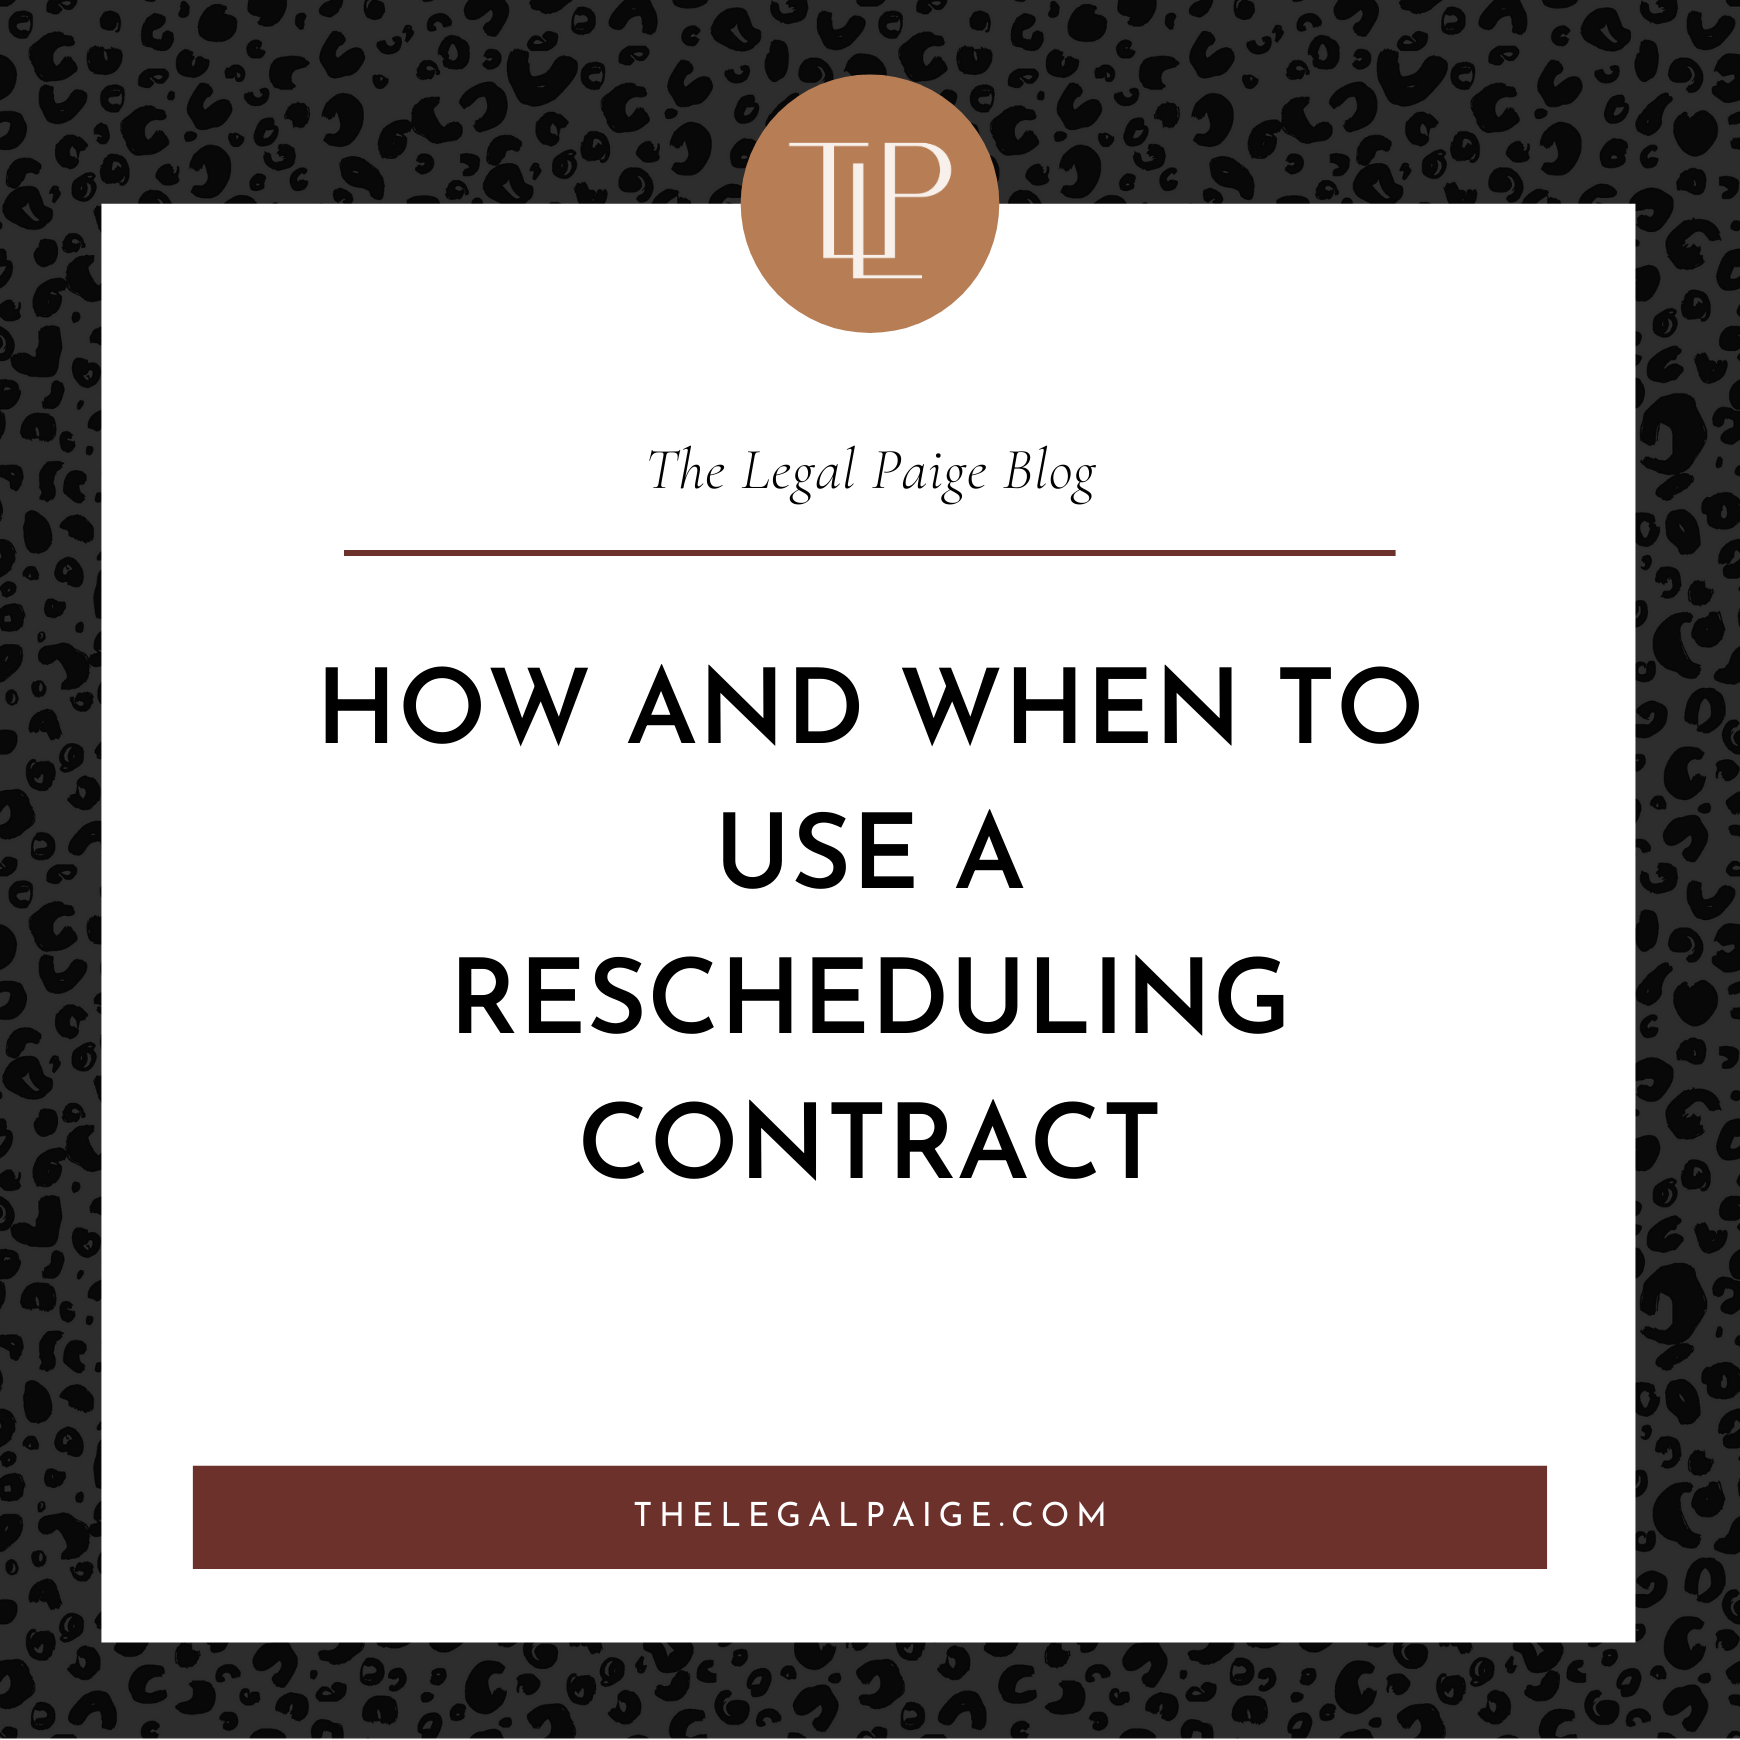 How and When to Use a Rescheduling Contract